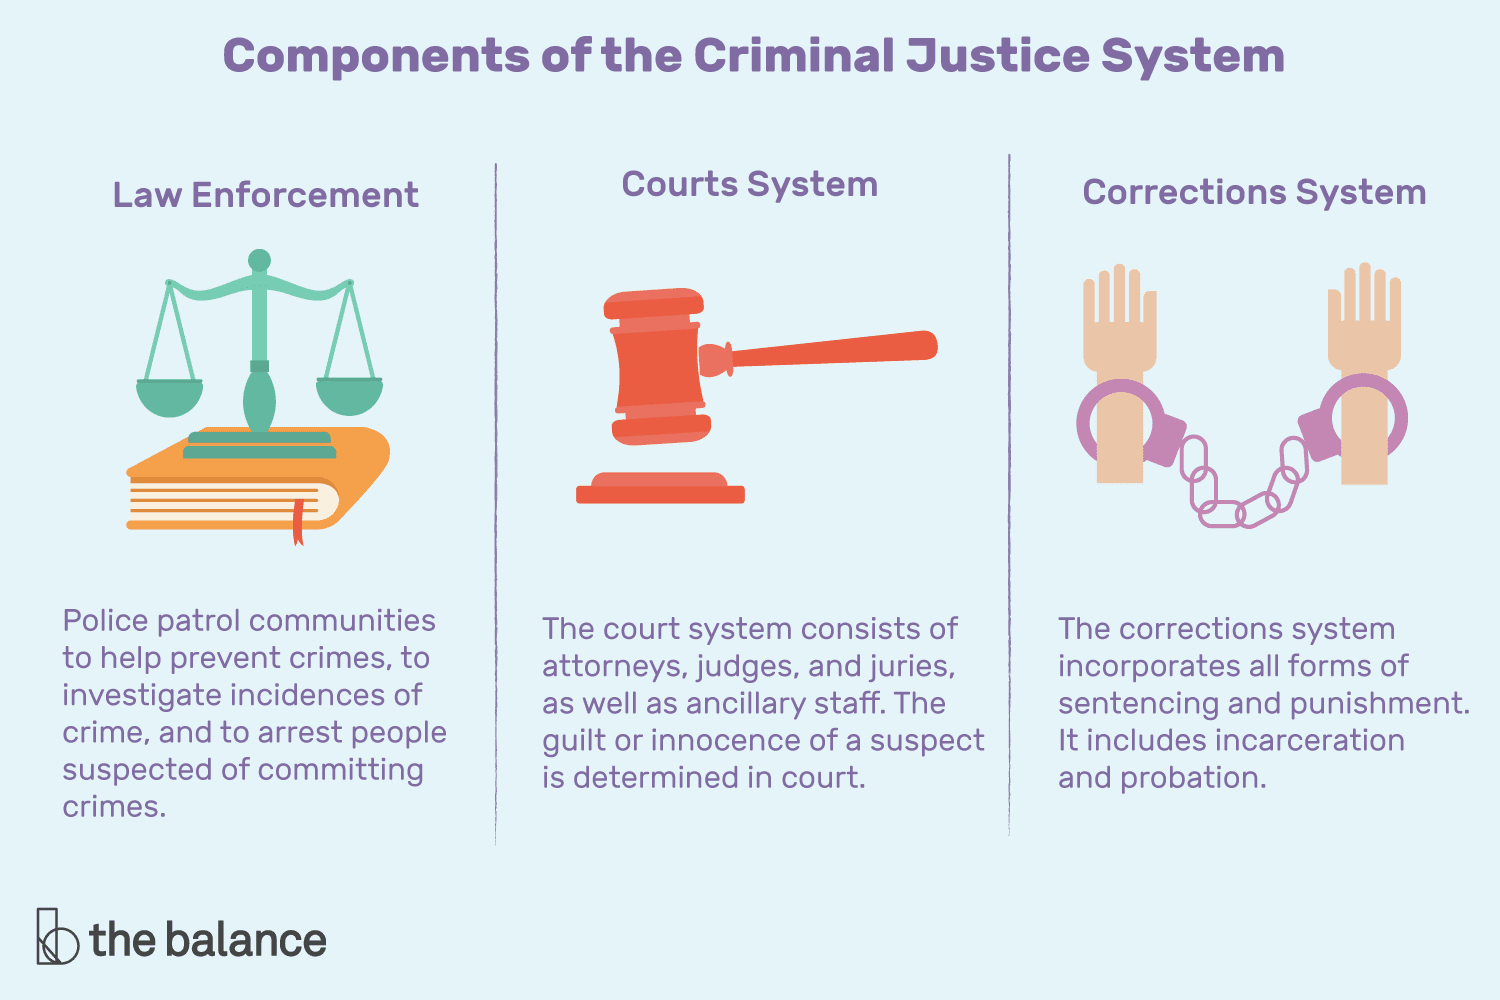 The components of the criminal justice system